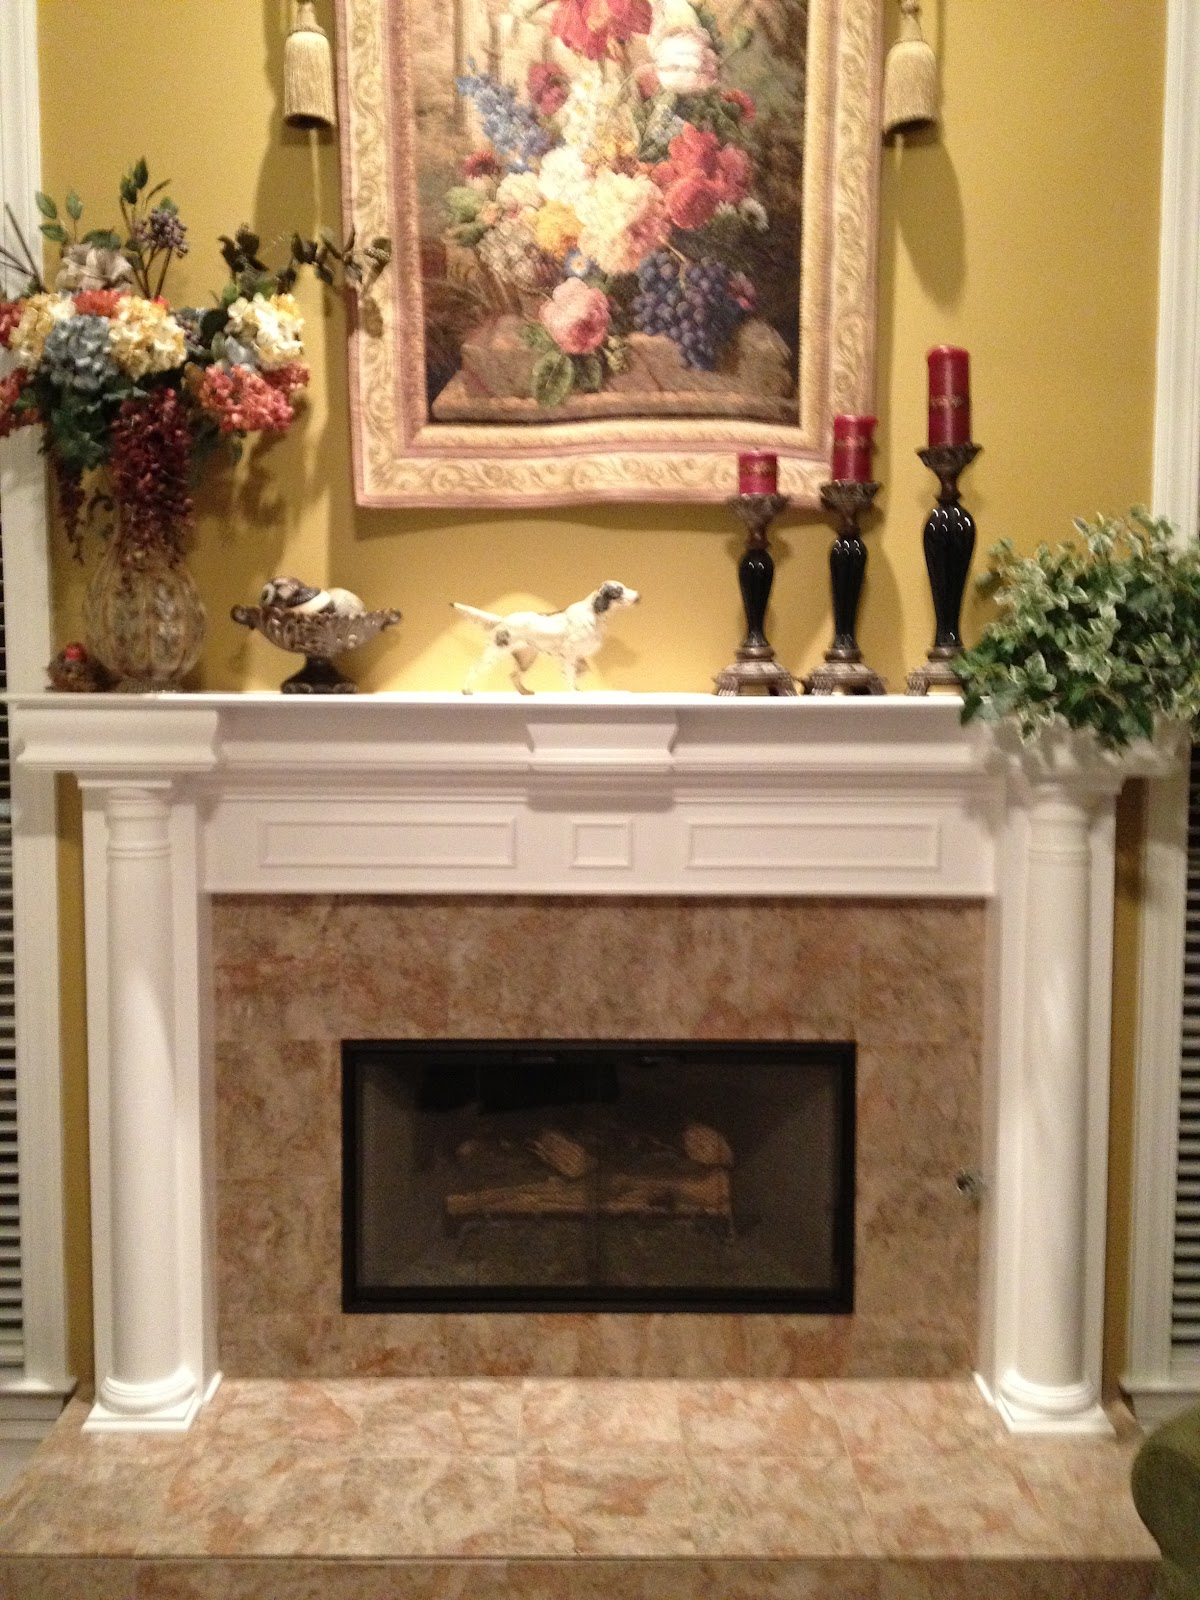 Fireplace Decorating: How to Build Fireplace Doors Using ...